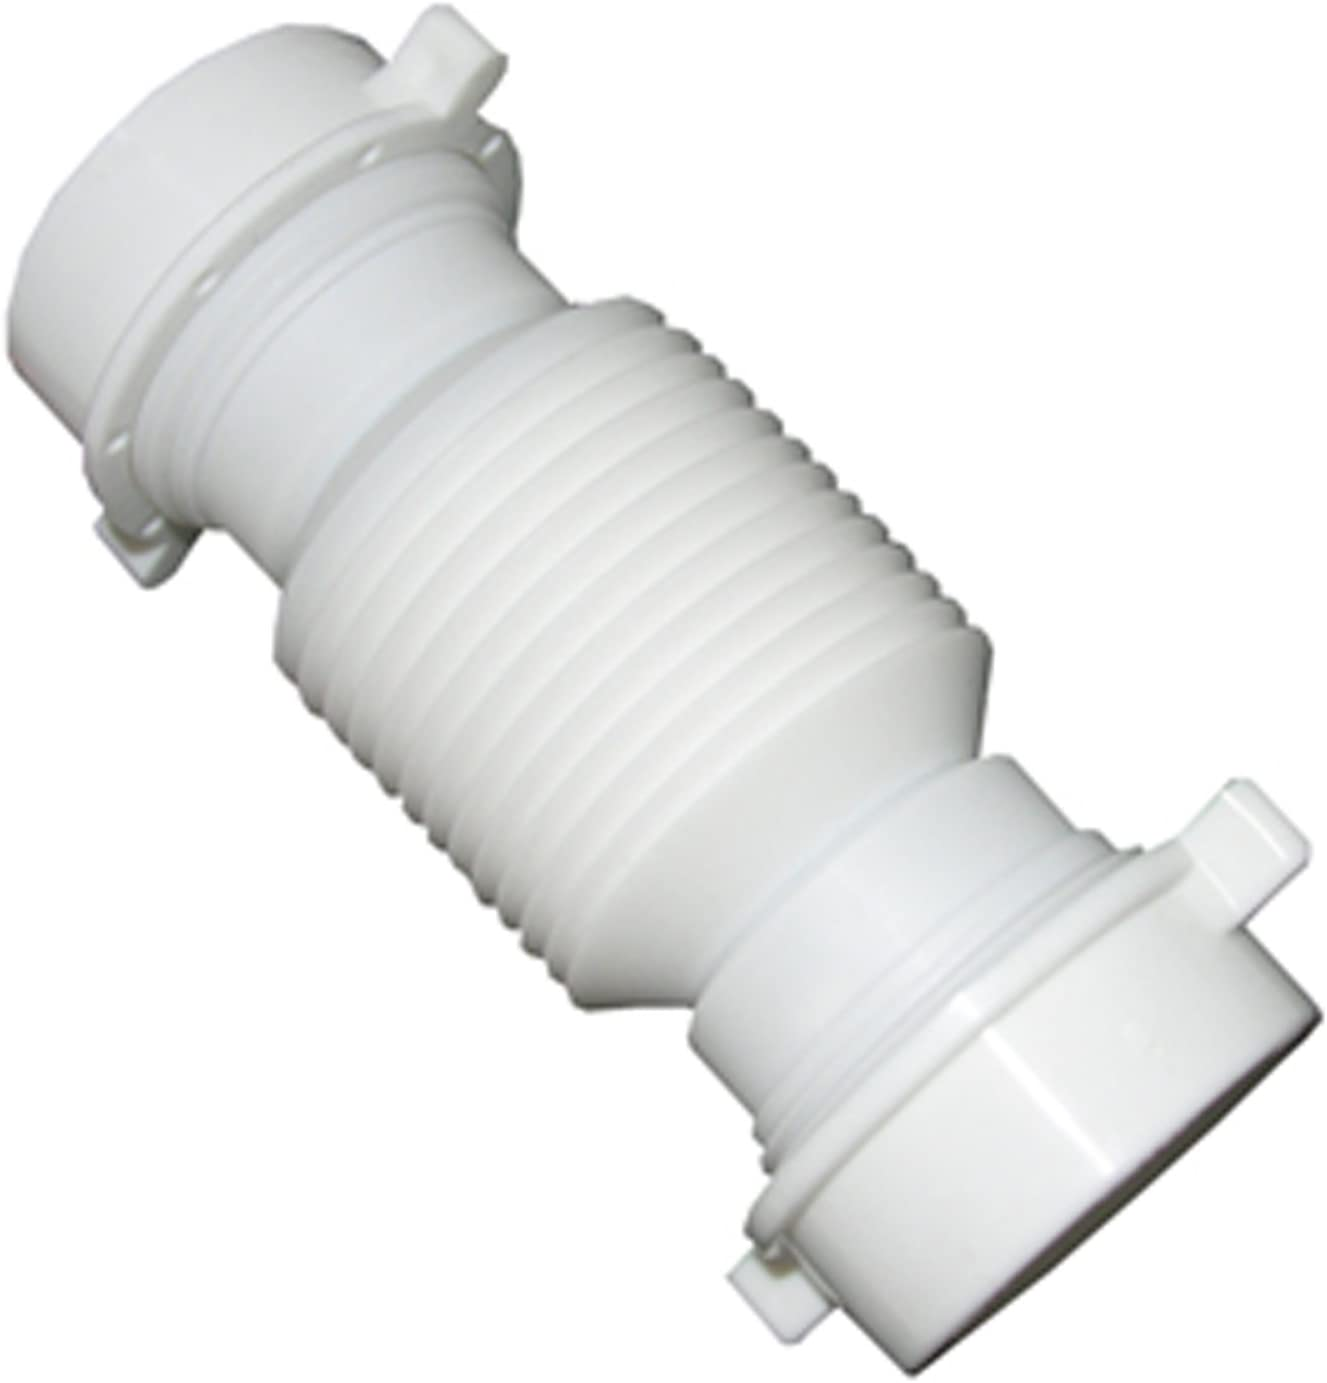 Slip Joint Extension with Nut and Washer Extendable LASCO 03-4319 White Plastic Tubular 1-1//2-Inch Flexible